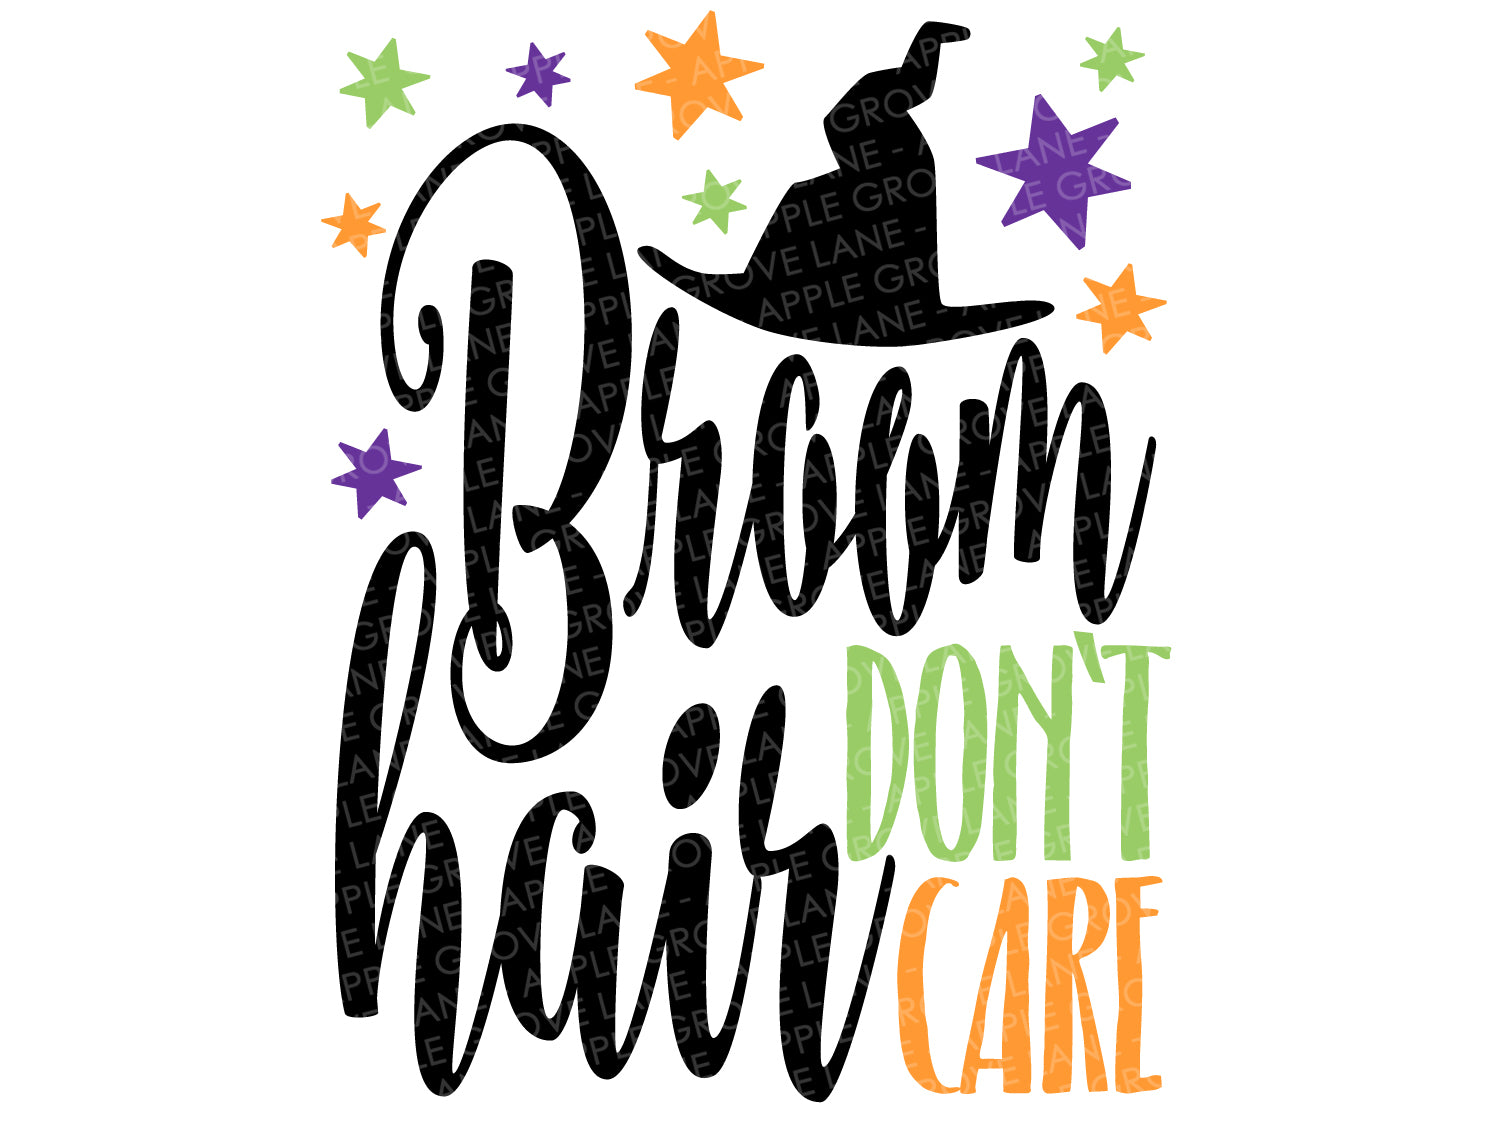 Broom Hair Svg - Witch SVG - Halloween Svg - Fall Svg - Halloween Witch Svg - Funny Halloween Svg - Witch Clip Art - Svg Eps Dxf Png